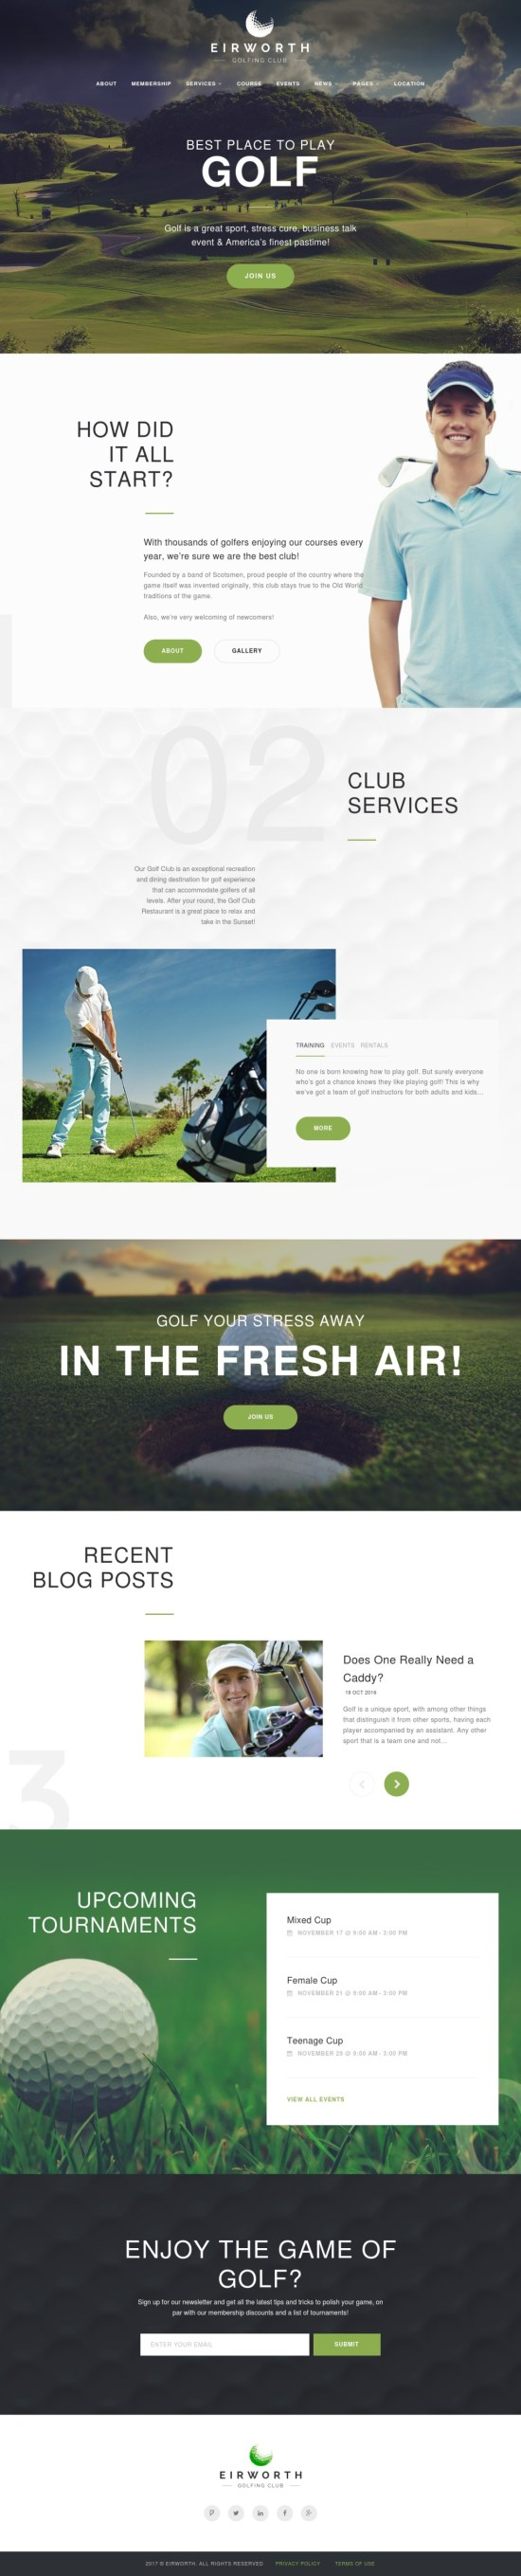 eirworth wordpress theme template monster 01 - Eirworth WordPress Theme